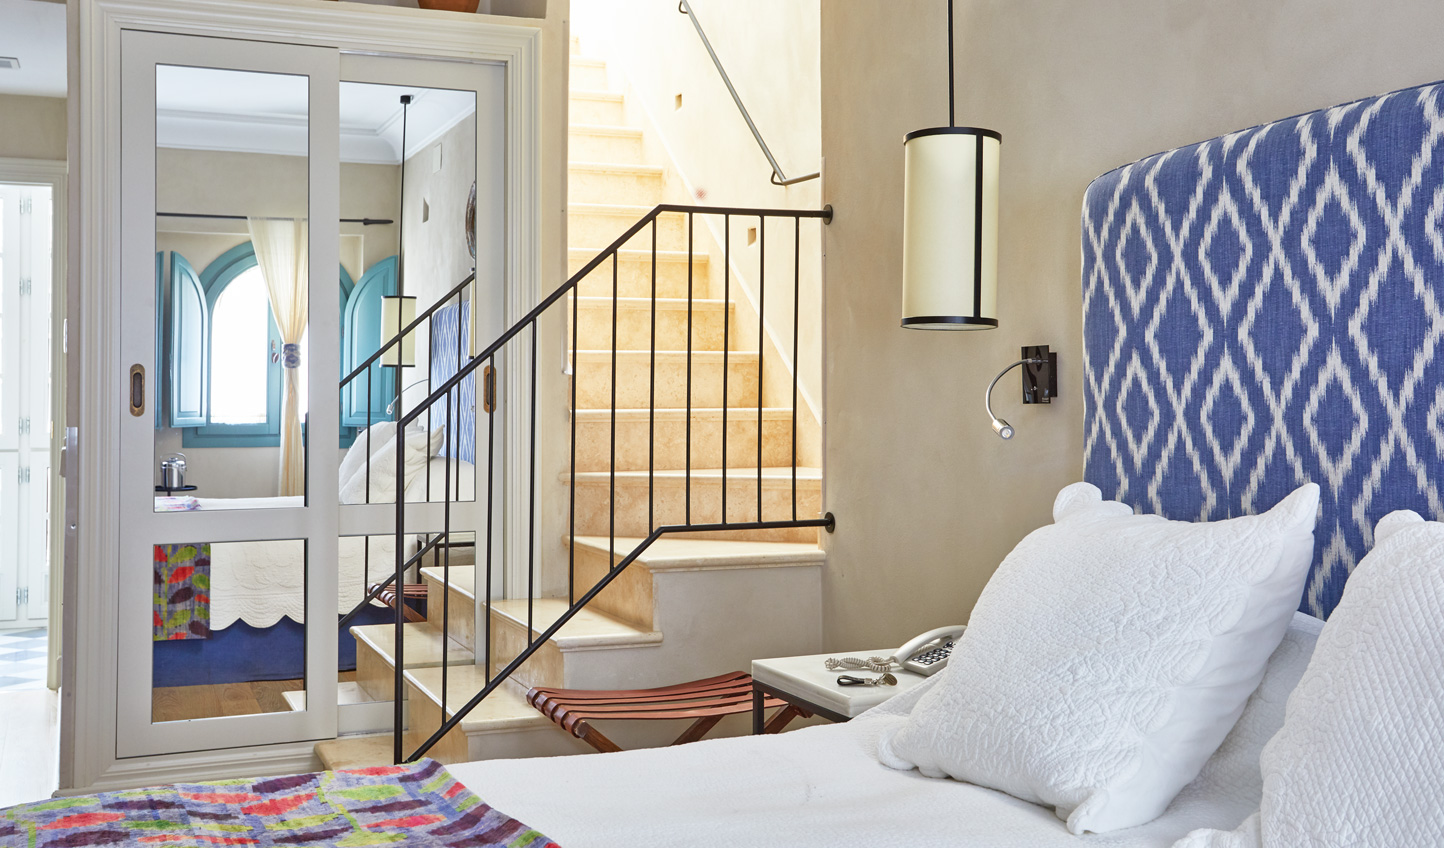 Hideaway in your charming room at Corral del Rey